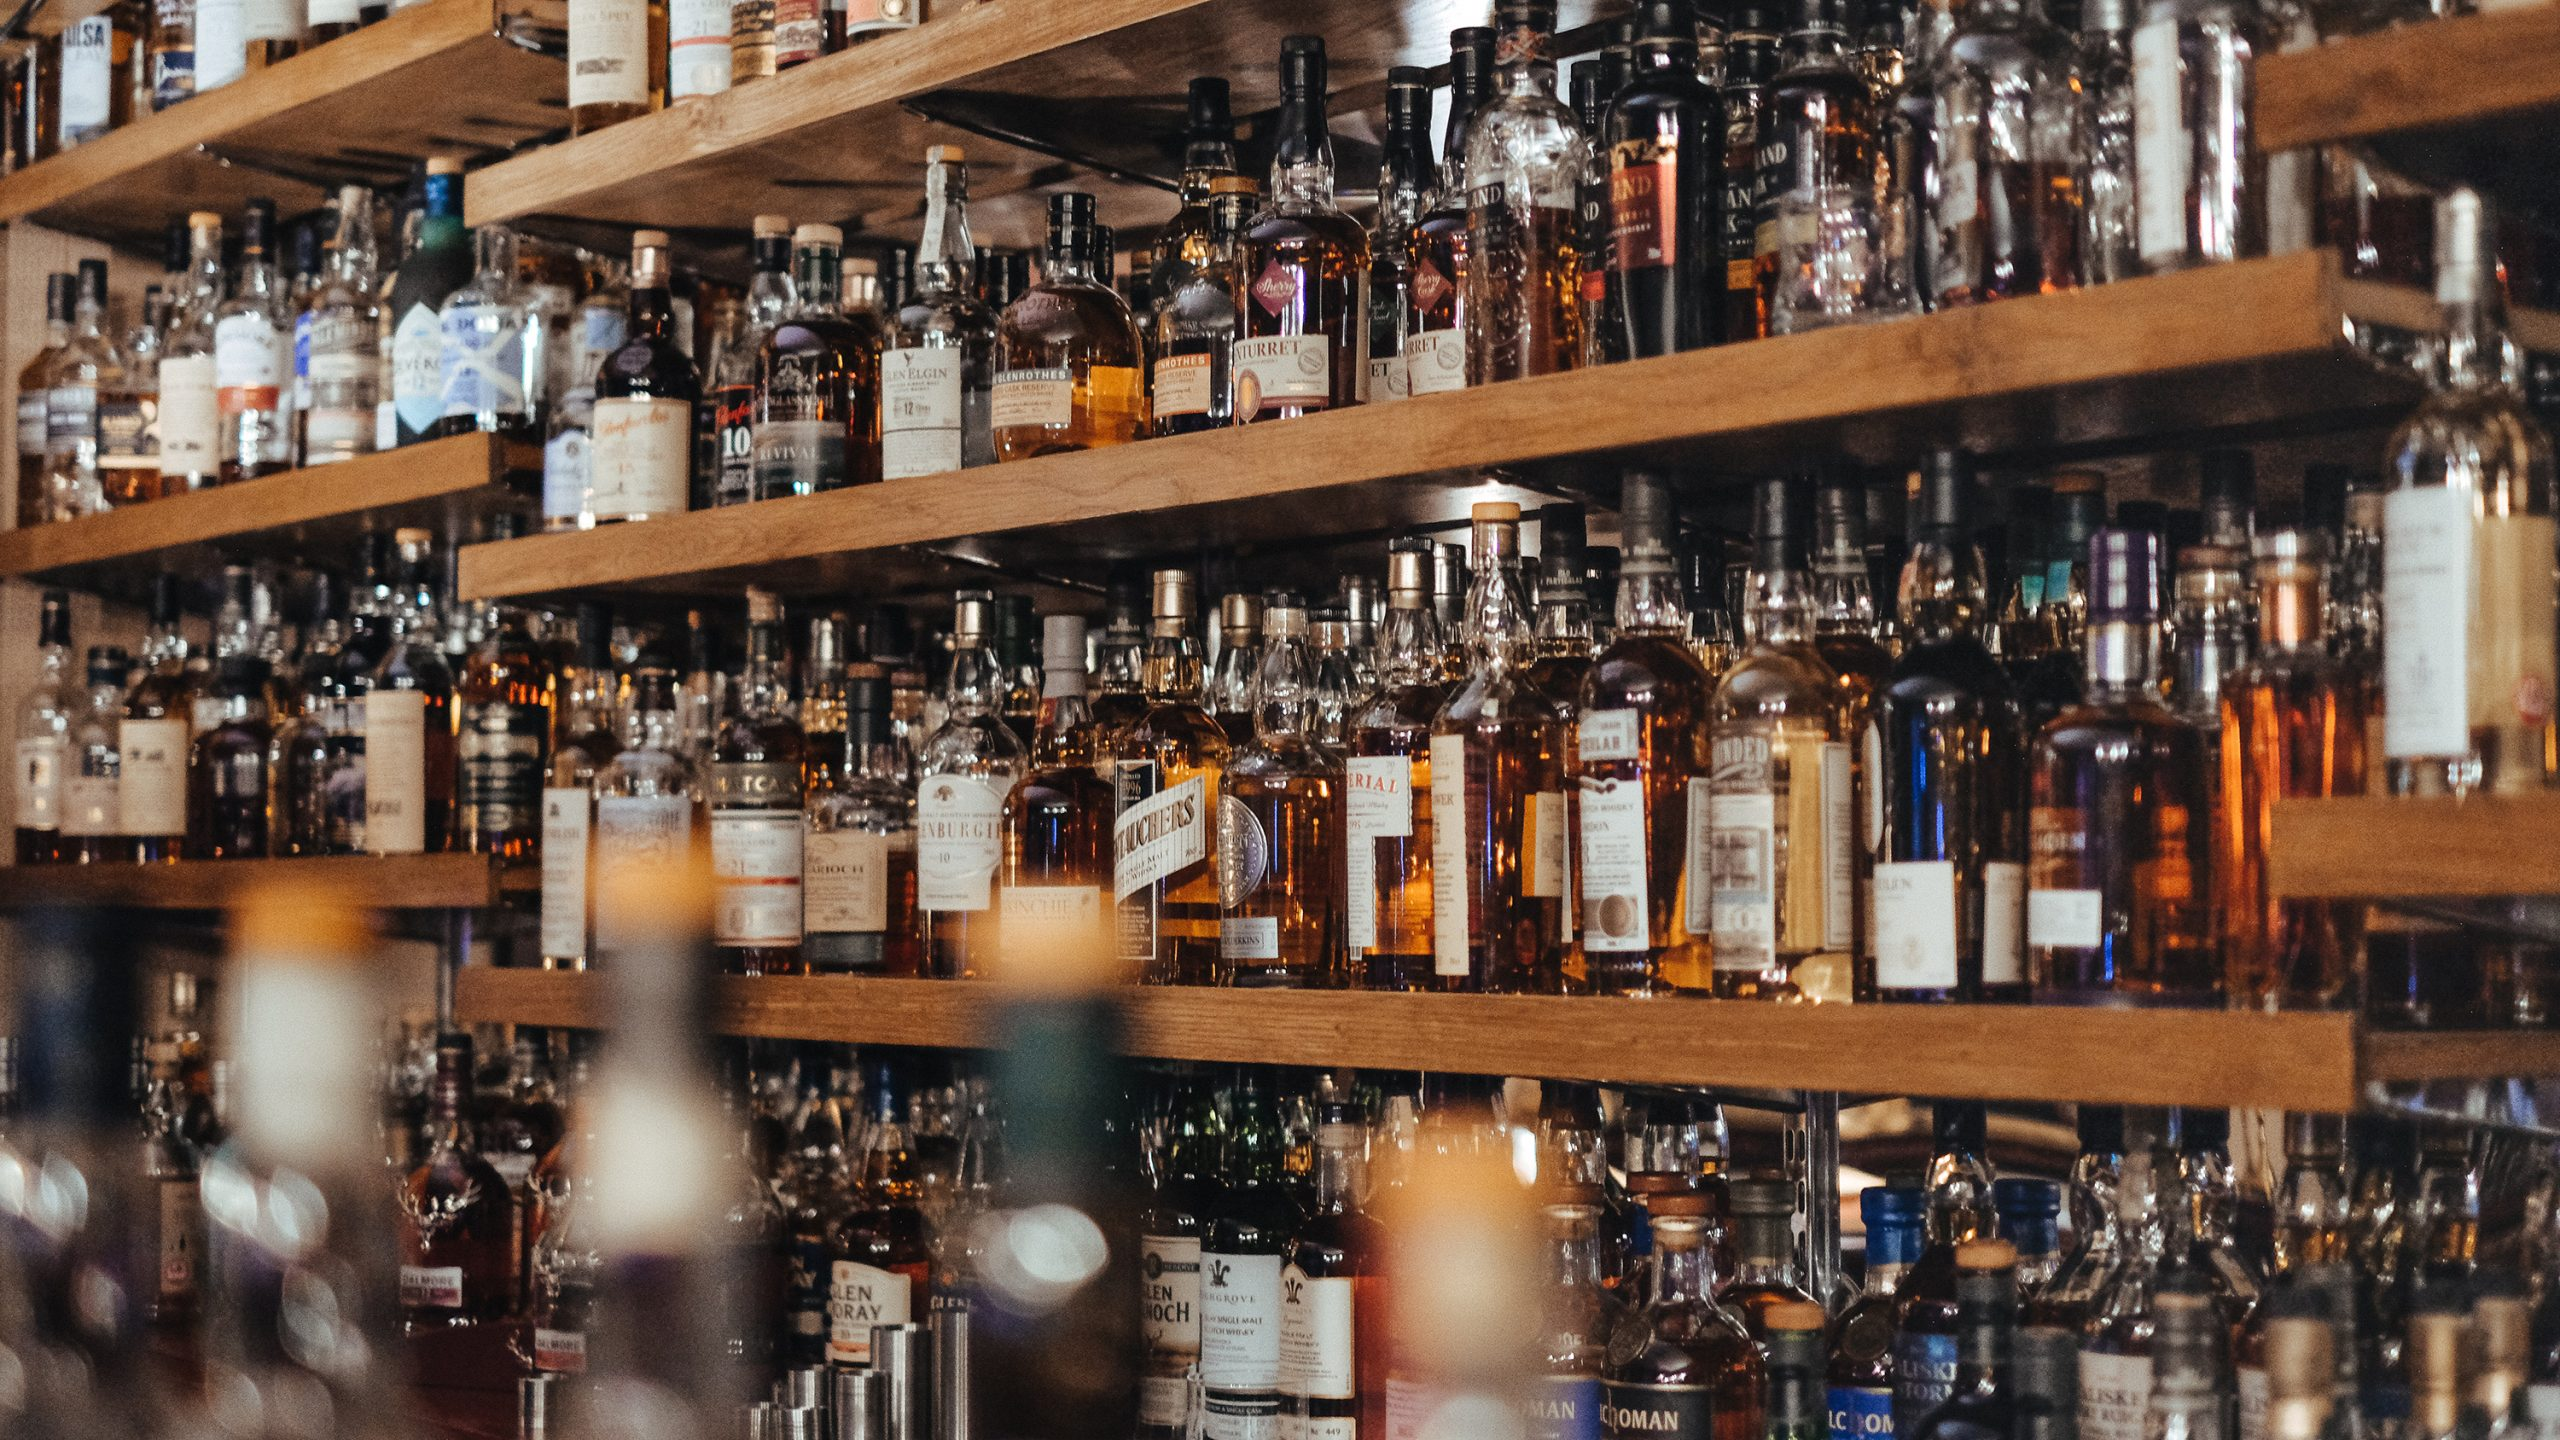 The 26 Best Scotch Whiskies In The World According To The International Spirits Challenge 2020 adam-wilson-6UIonphZA5o-unsplash